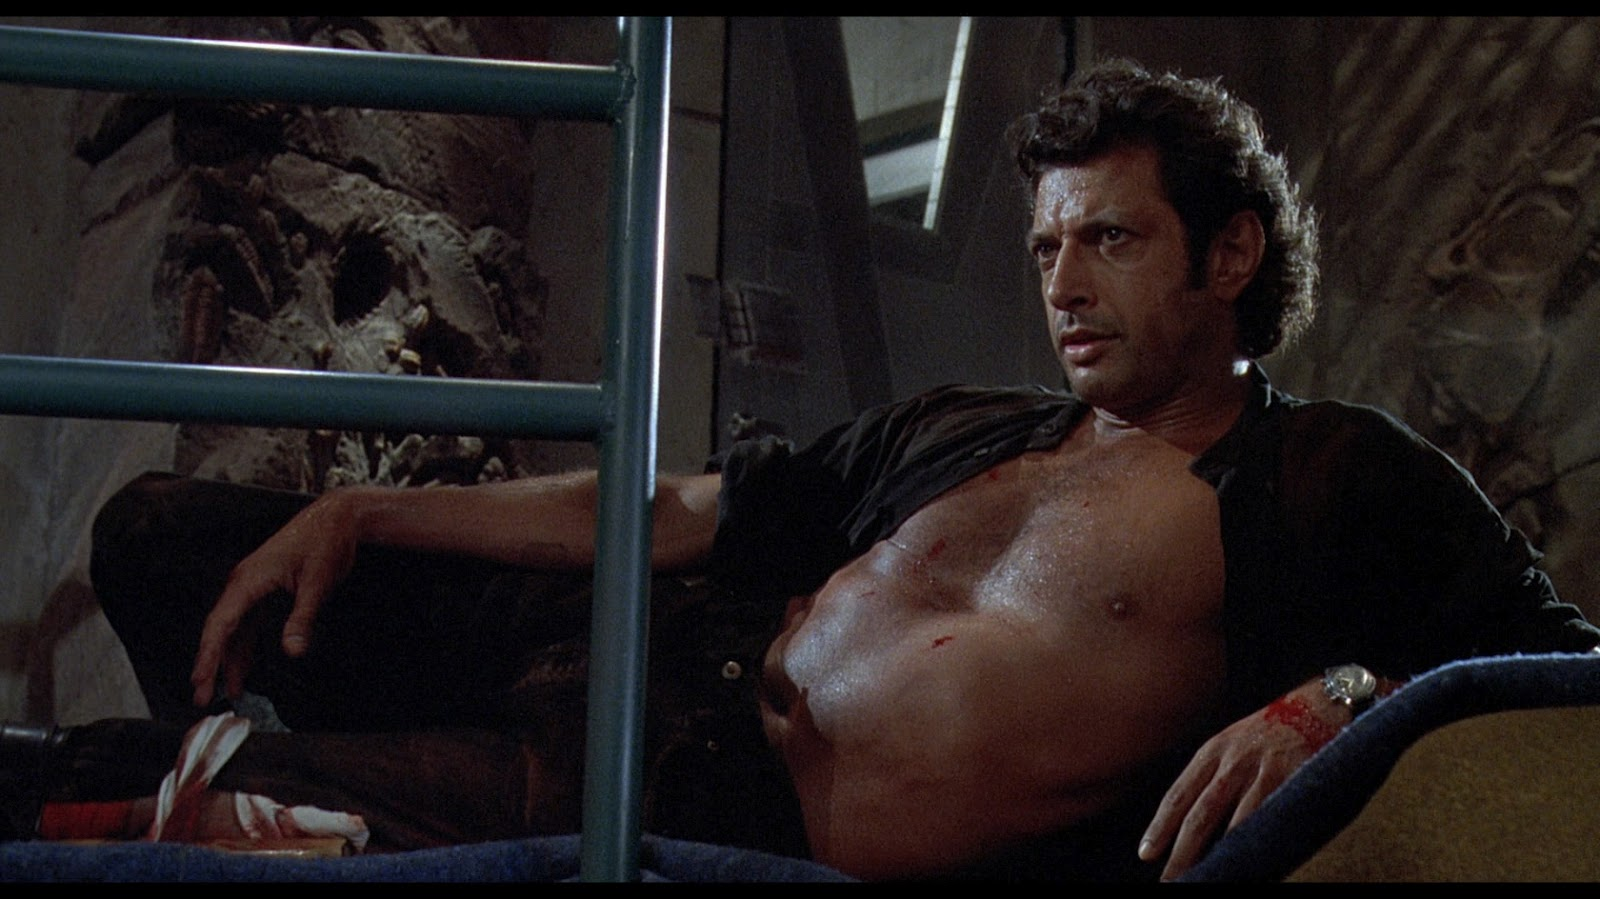 Jeff Goldblum in Jurassic Park, okay this isn't really a kid memory but still awesome. #mcm